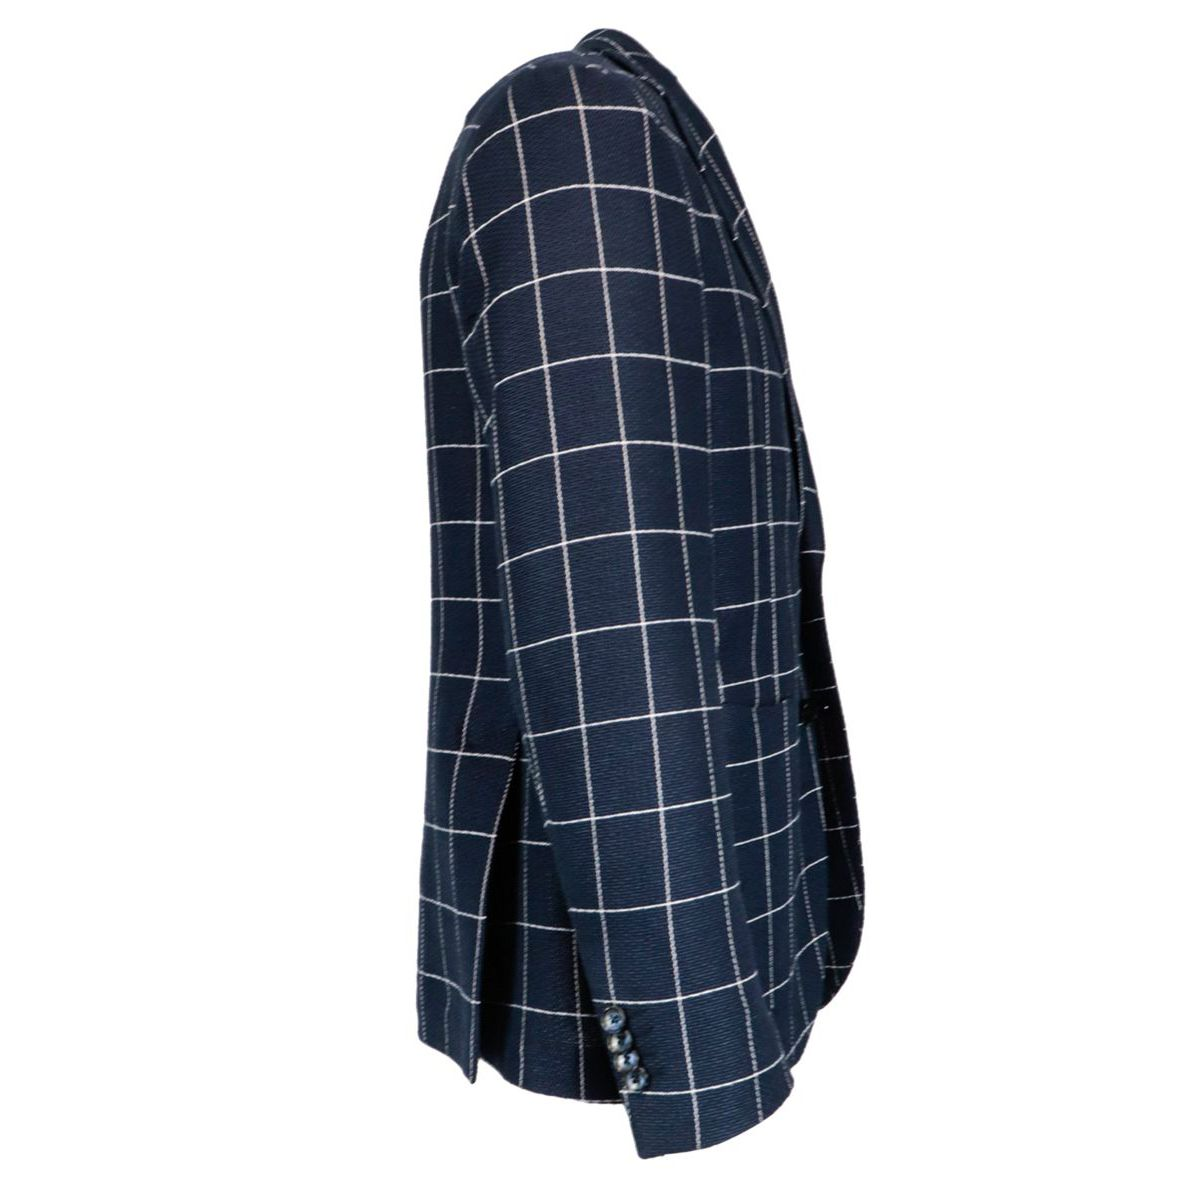 Slim two-button jacket in madras patterned cotton and linen Blue L.B.M. 1911